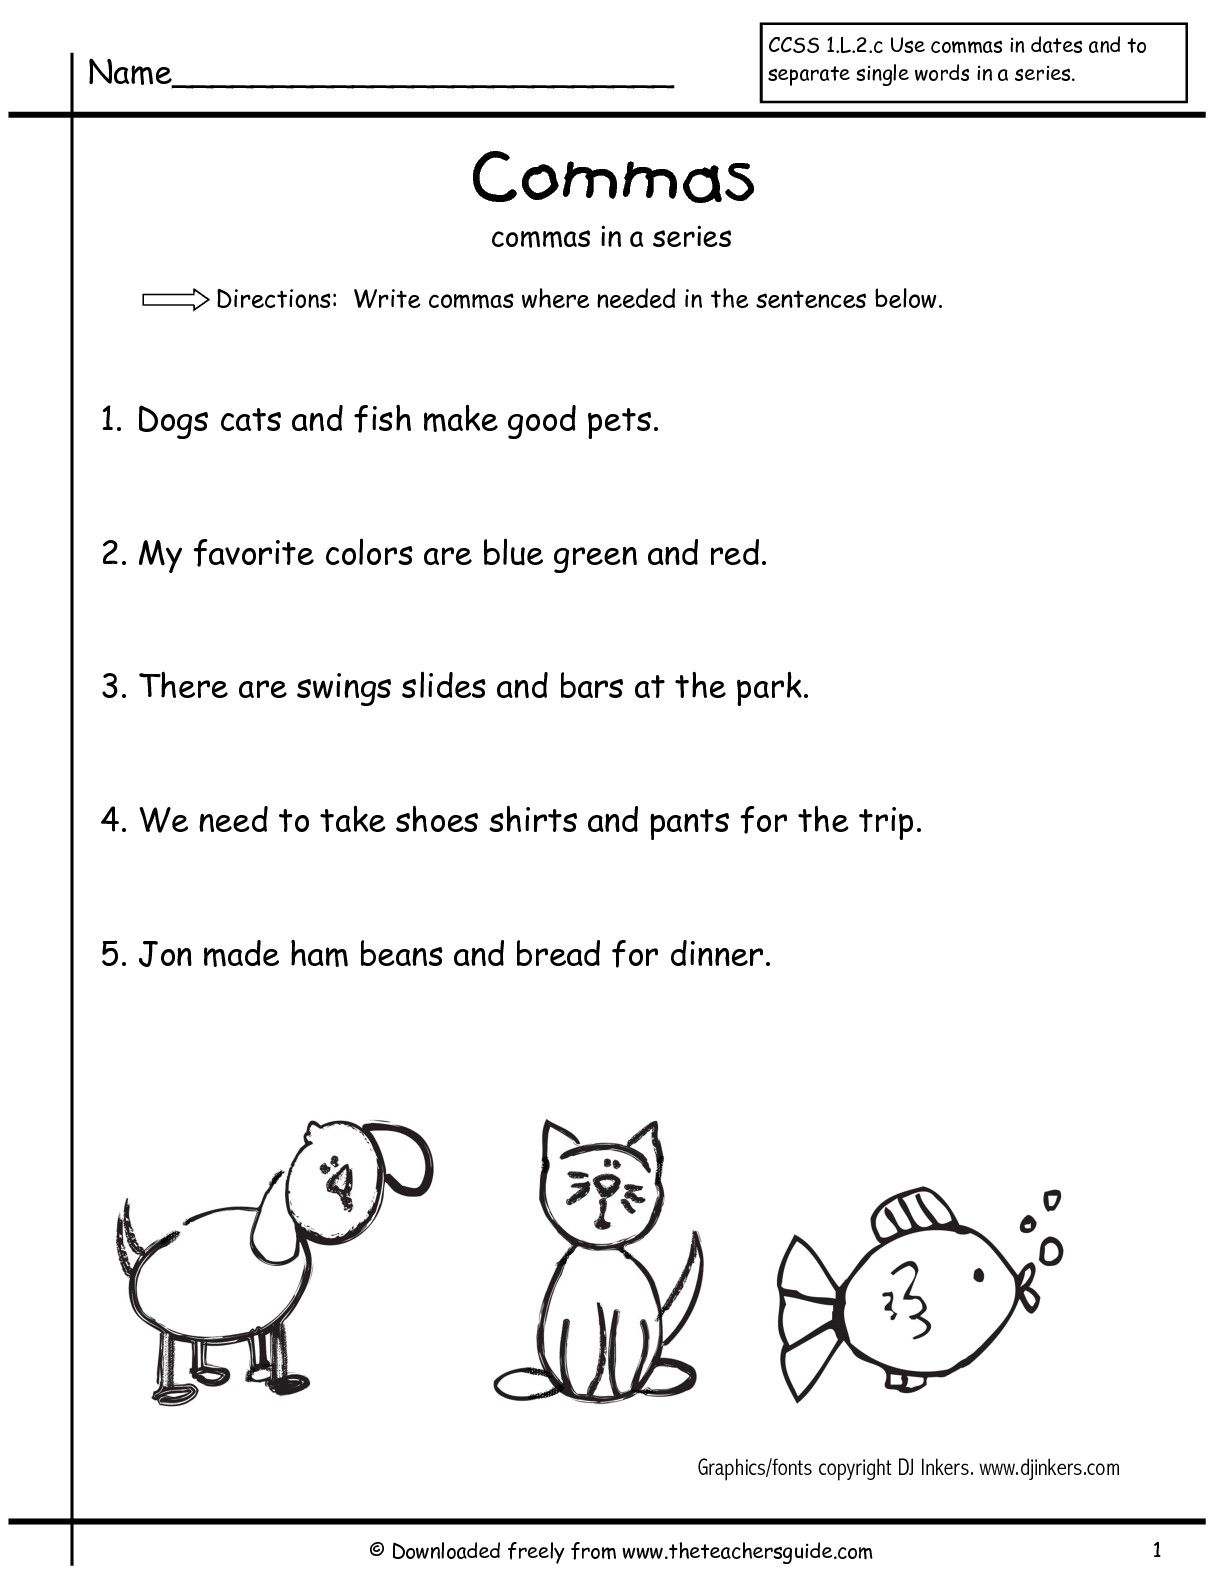 Wonders Second Grade Unit Two Week One Printouts Punctuation Worksheets Grammar Worksheets Commas In A Series